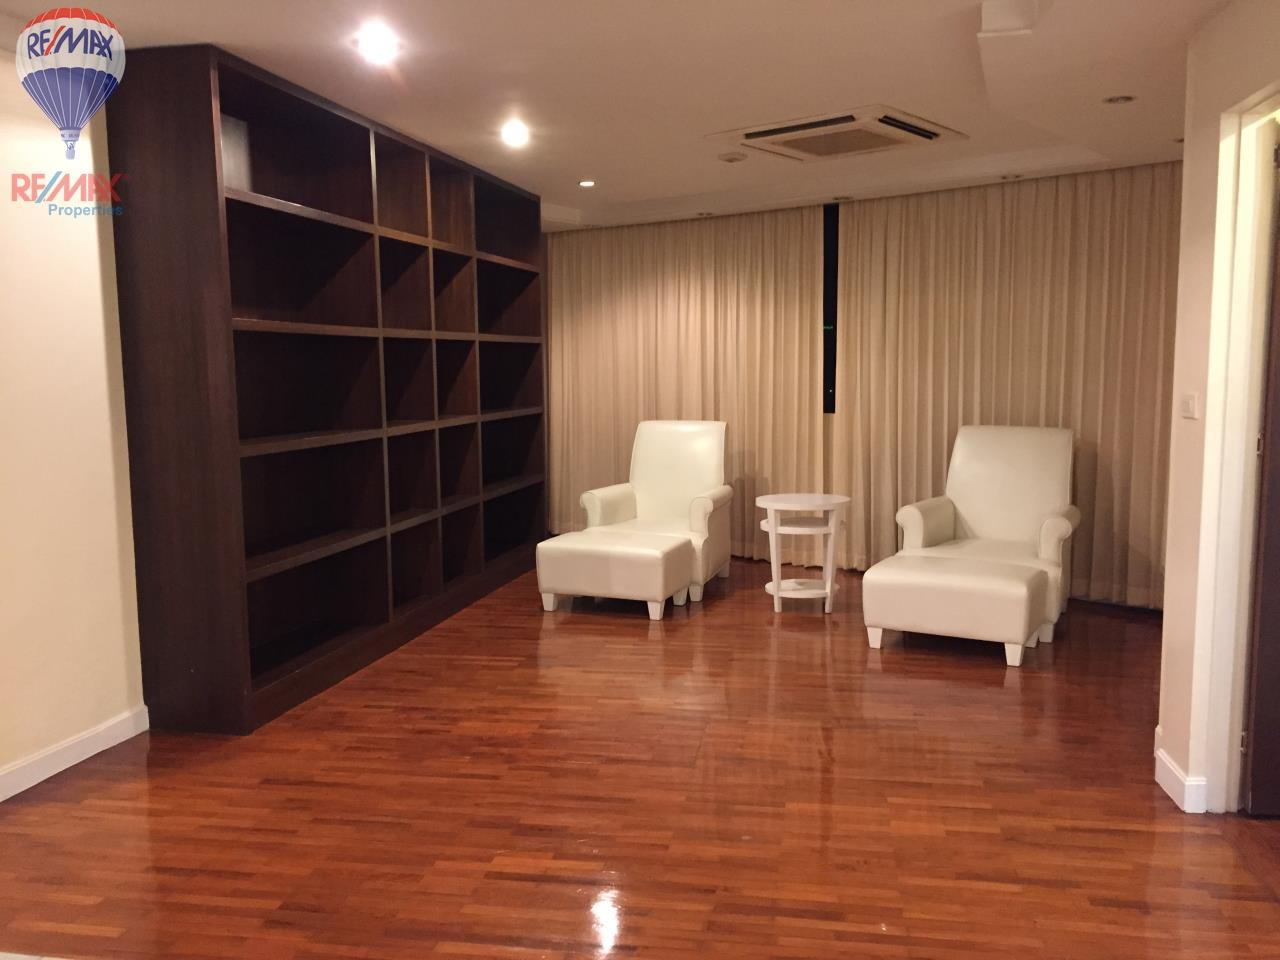 RE/MAX Properties Agency's SALE/RENT 4 Bedroom 260 Sq.m at President park  6